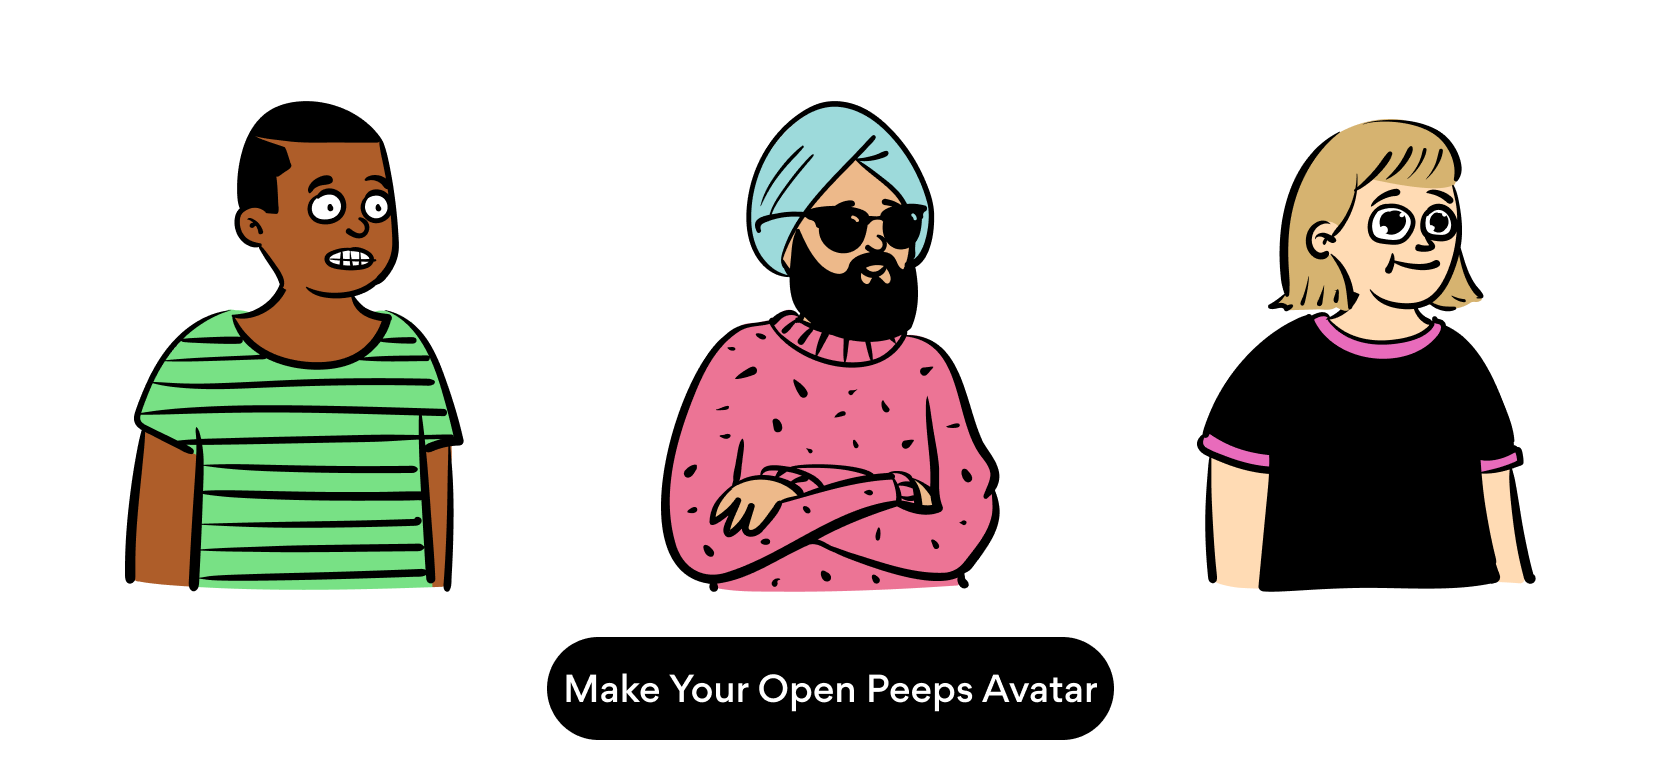 Make your avatar with open peeps